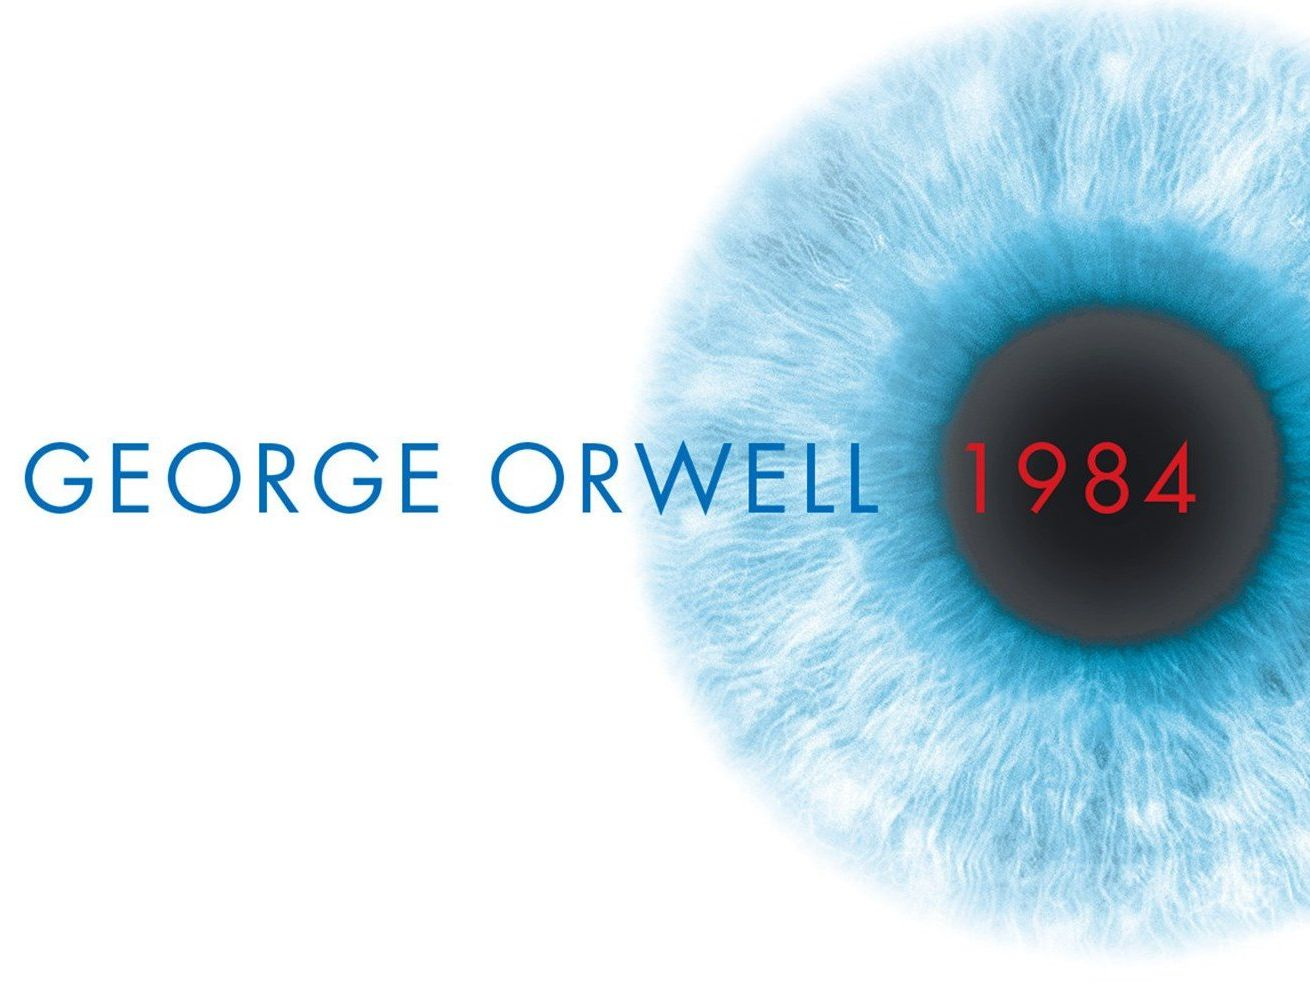 1984 - George Orwell - COMPLETE IGCSE TEACH + EXAM PREP BUNDLE + ANSWERS